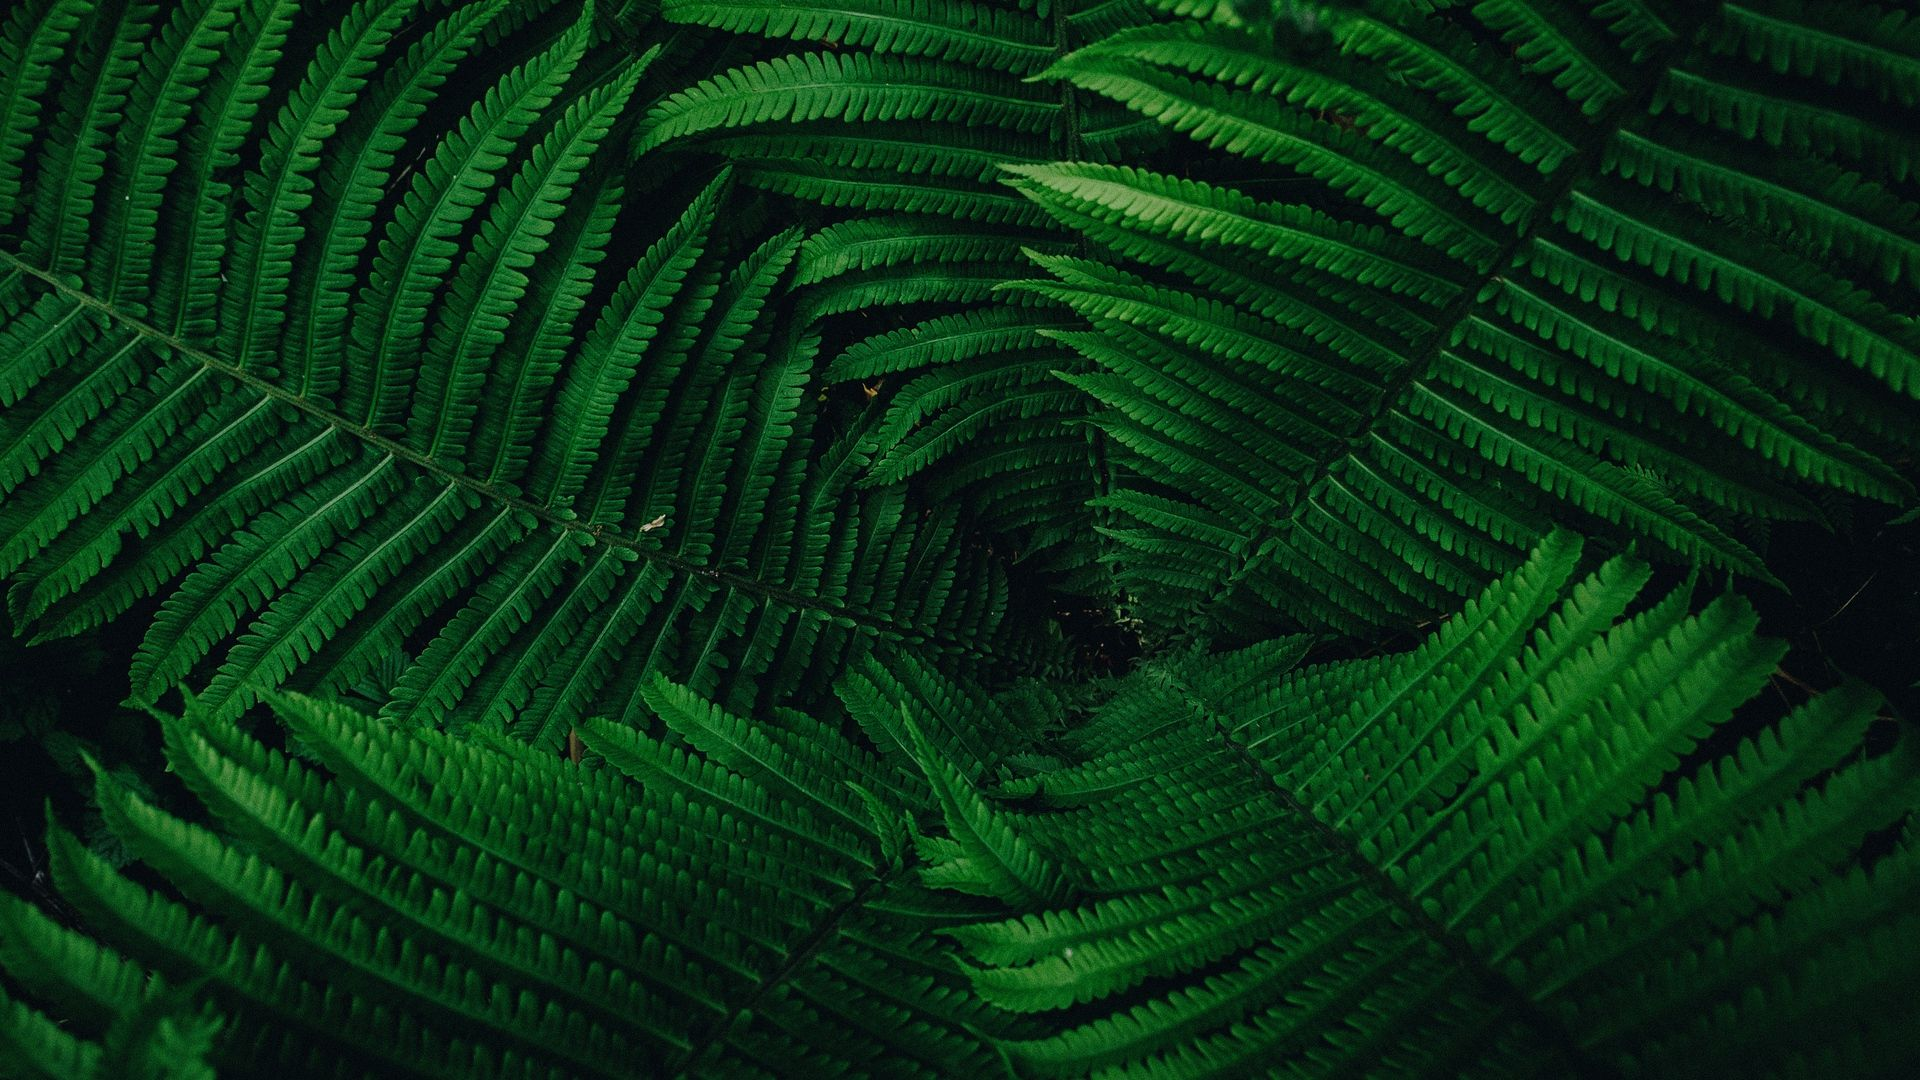 Fern free hd wallpaper